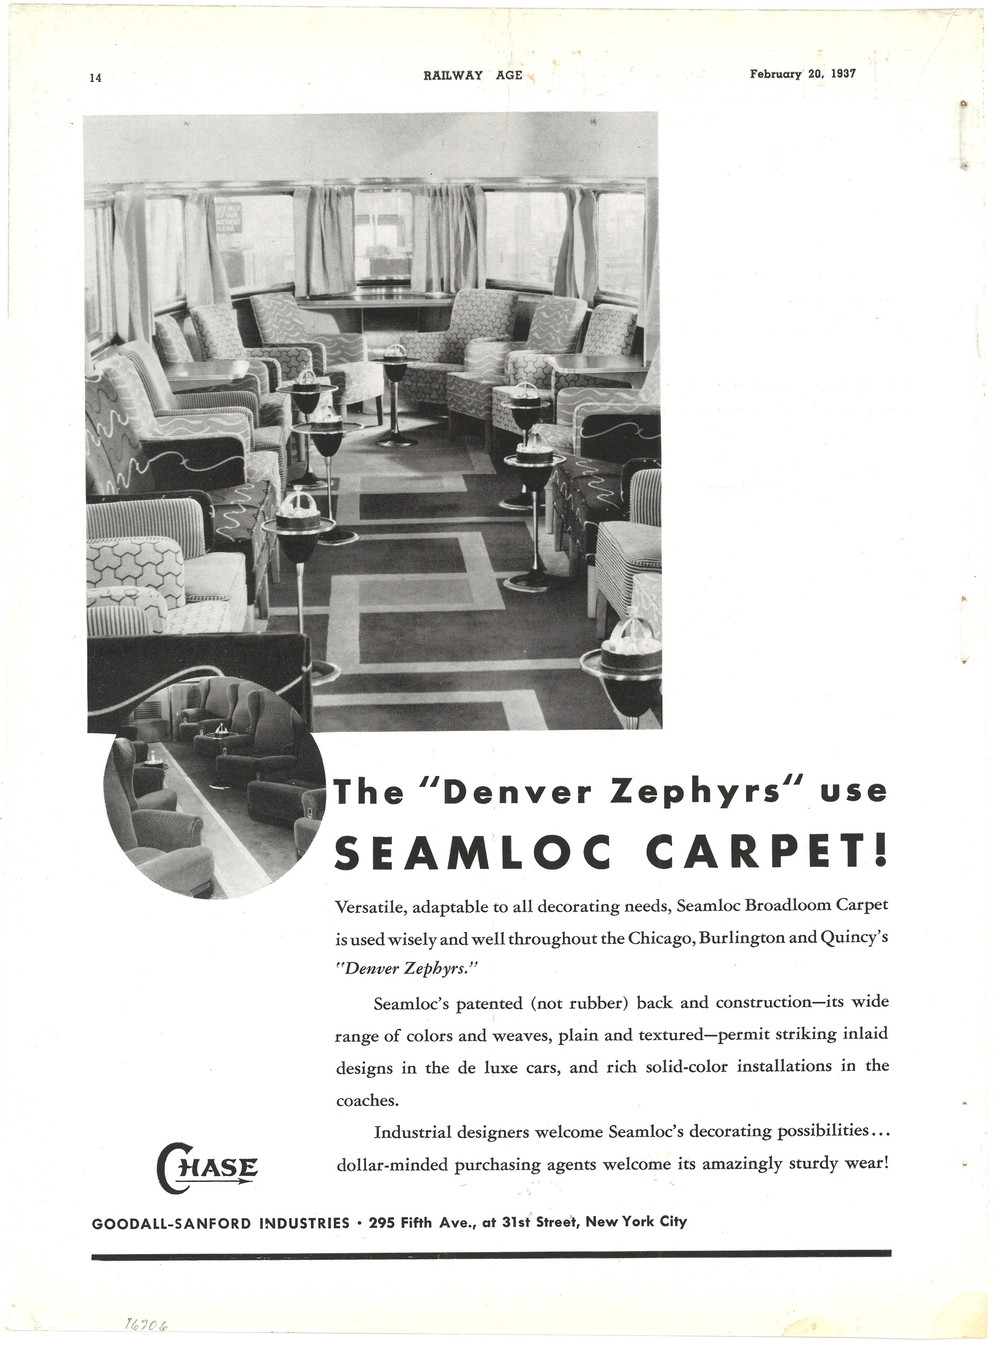 The %22Denver Zephyrs%22 use Seamloc Carpet!.jpg